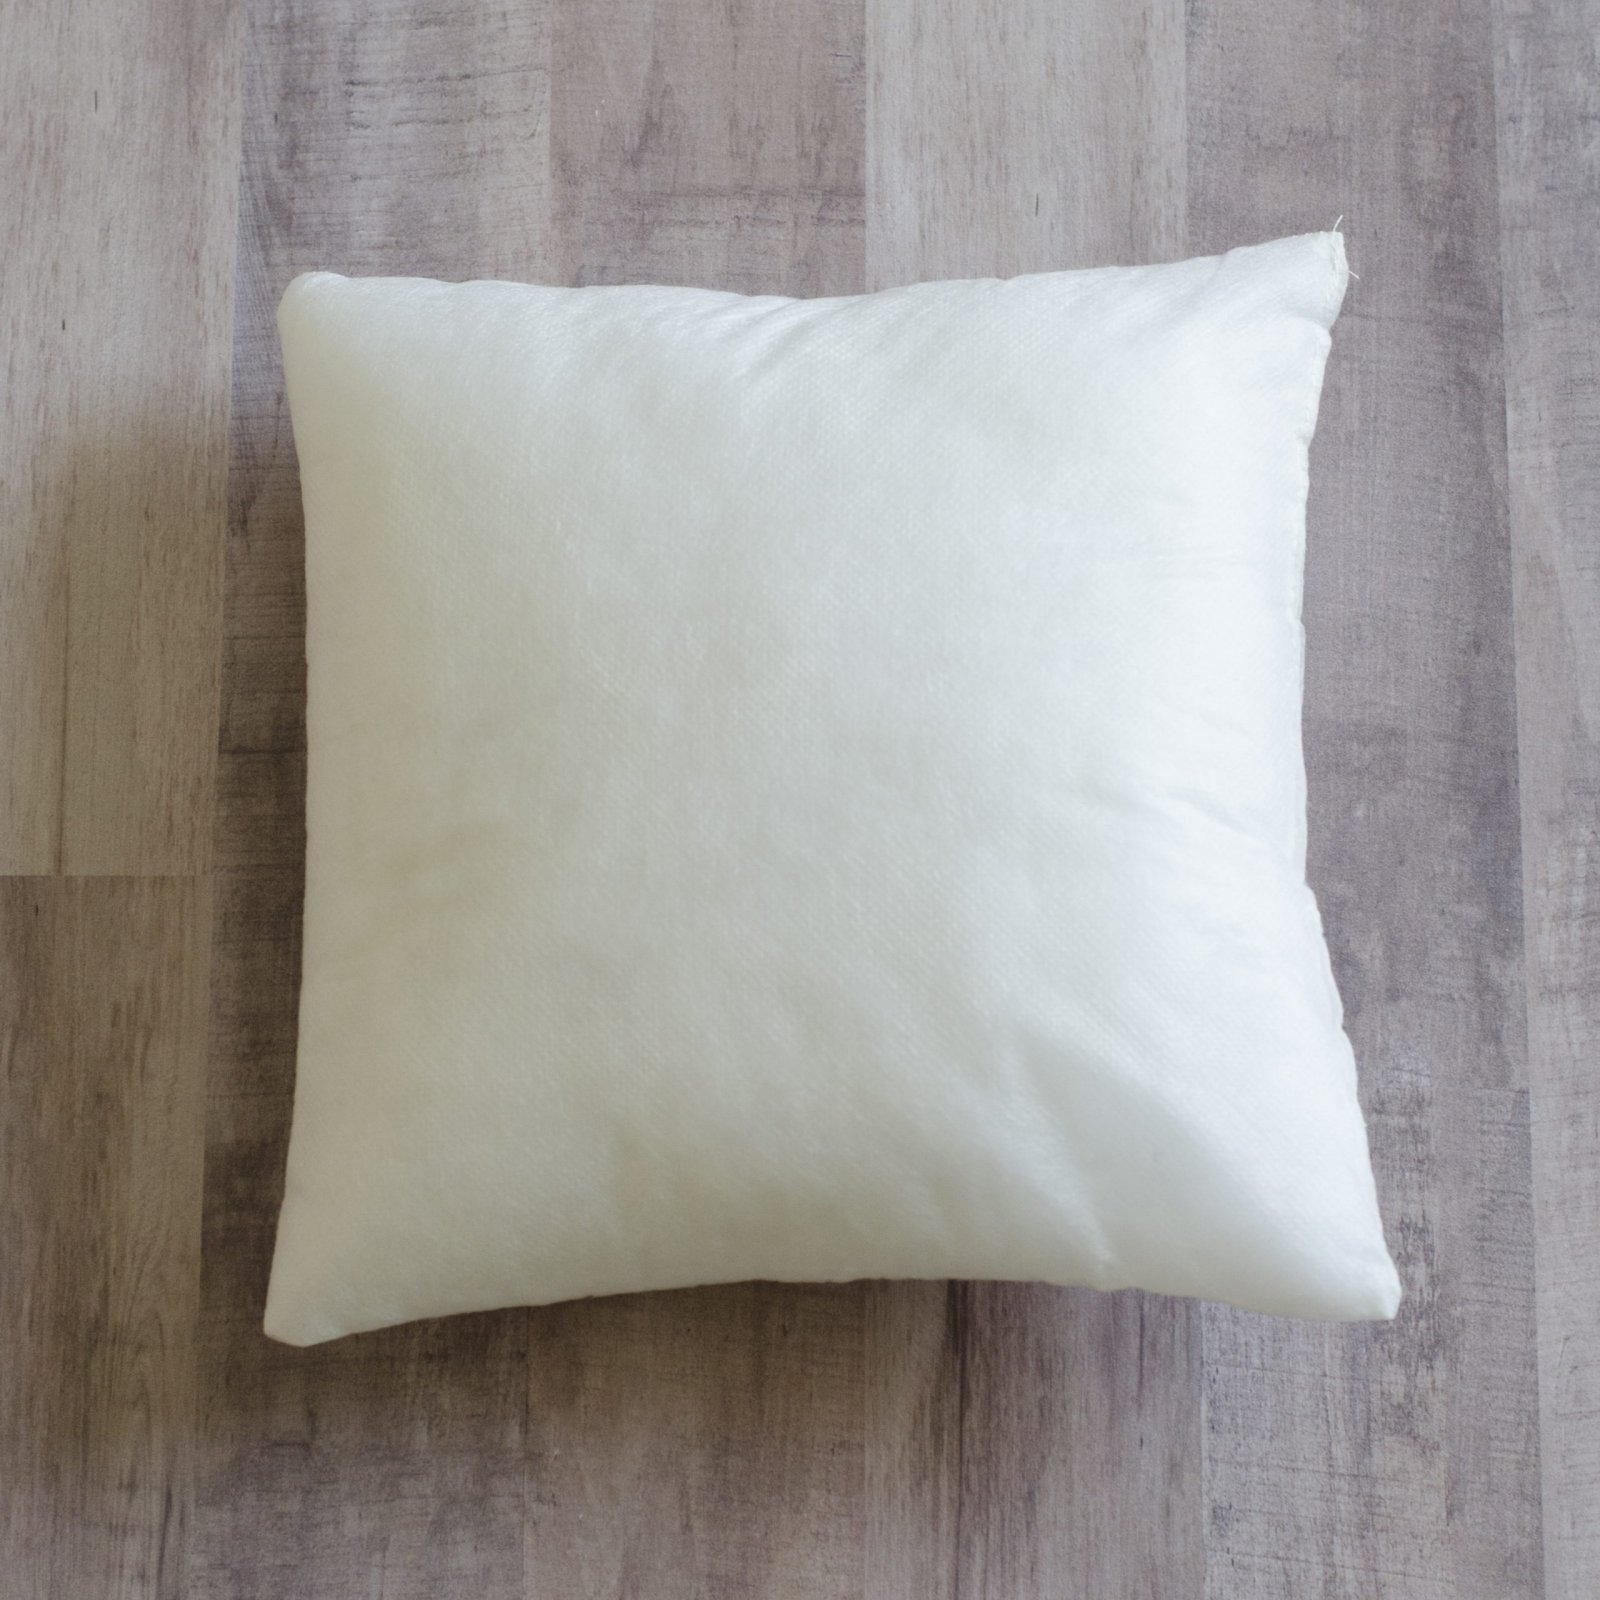 Kimberbell Blanks Pillow Insert - 8 x 8